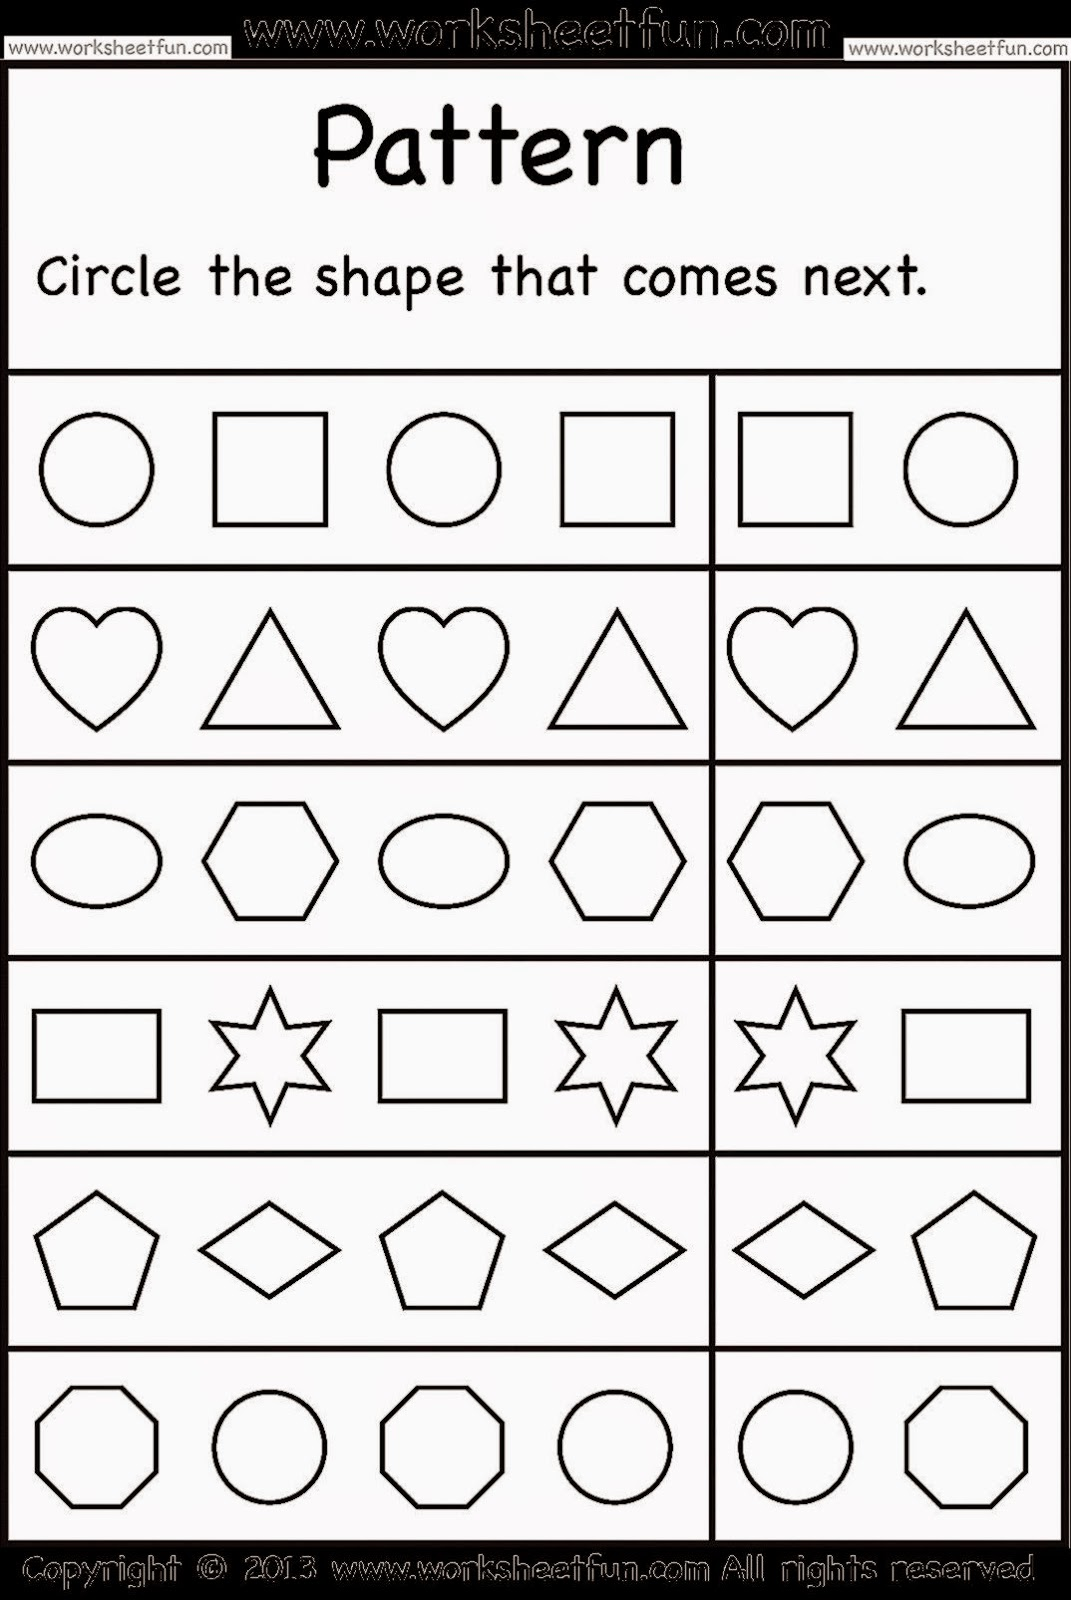 Kindergarten Worksheets Free Printables Phonics Templates and – Kindergarten Phonics Worksheets Free Printables